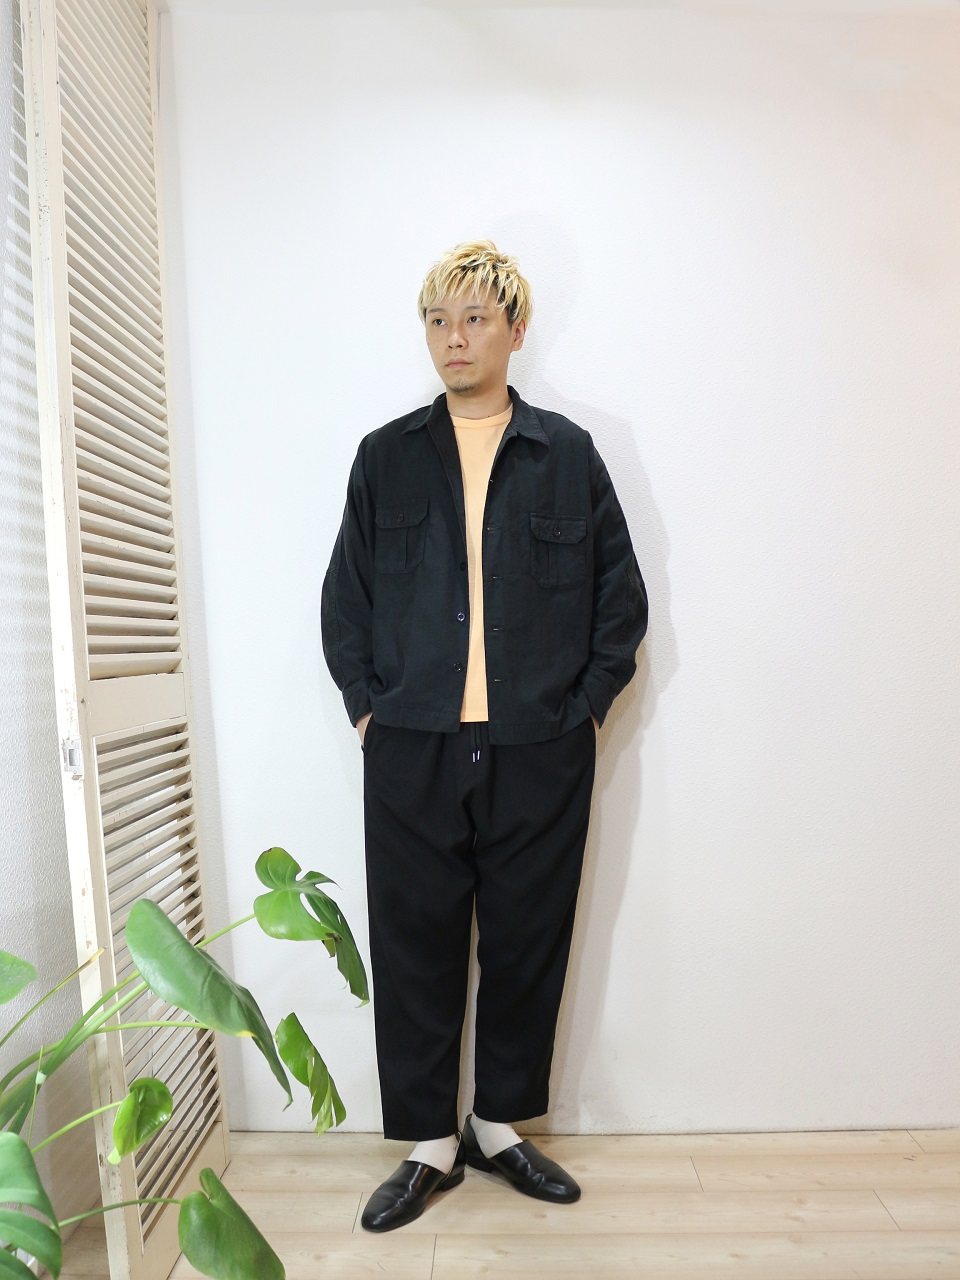 outer/H.UNIT STORE LABEL-Back stain dolman open collar long sleeves shirt(SIZE 1)pants/ReRe-COMFORT TROUSERS(SIZE 2)socks/decka-PLAIN MERCERIZATION SOCKS(SIZE MEN)を使ったコーディネート